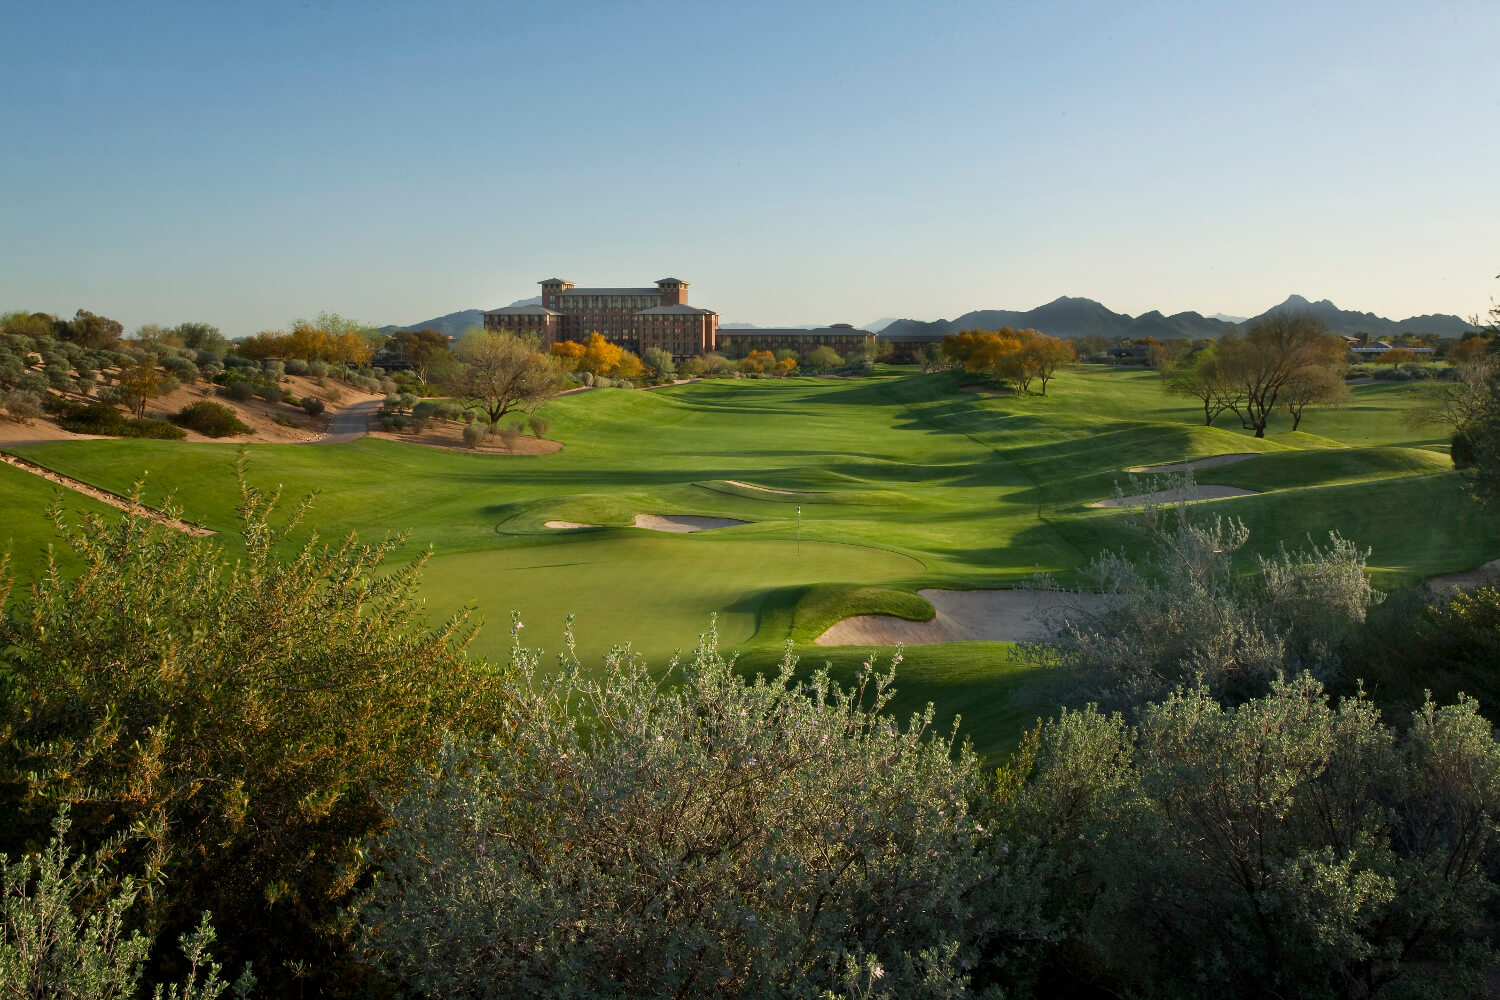 The Westin Kierland Golf Club